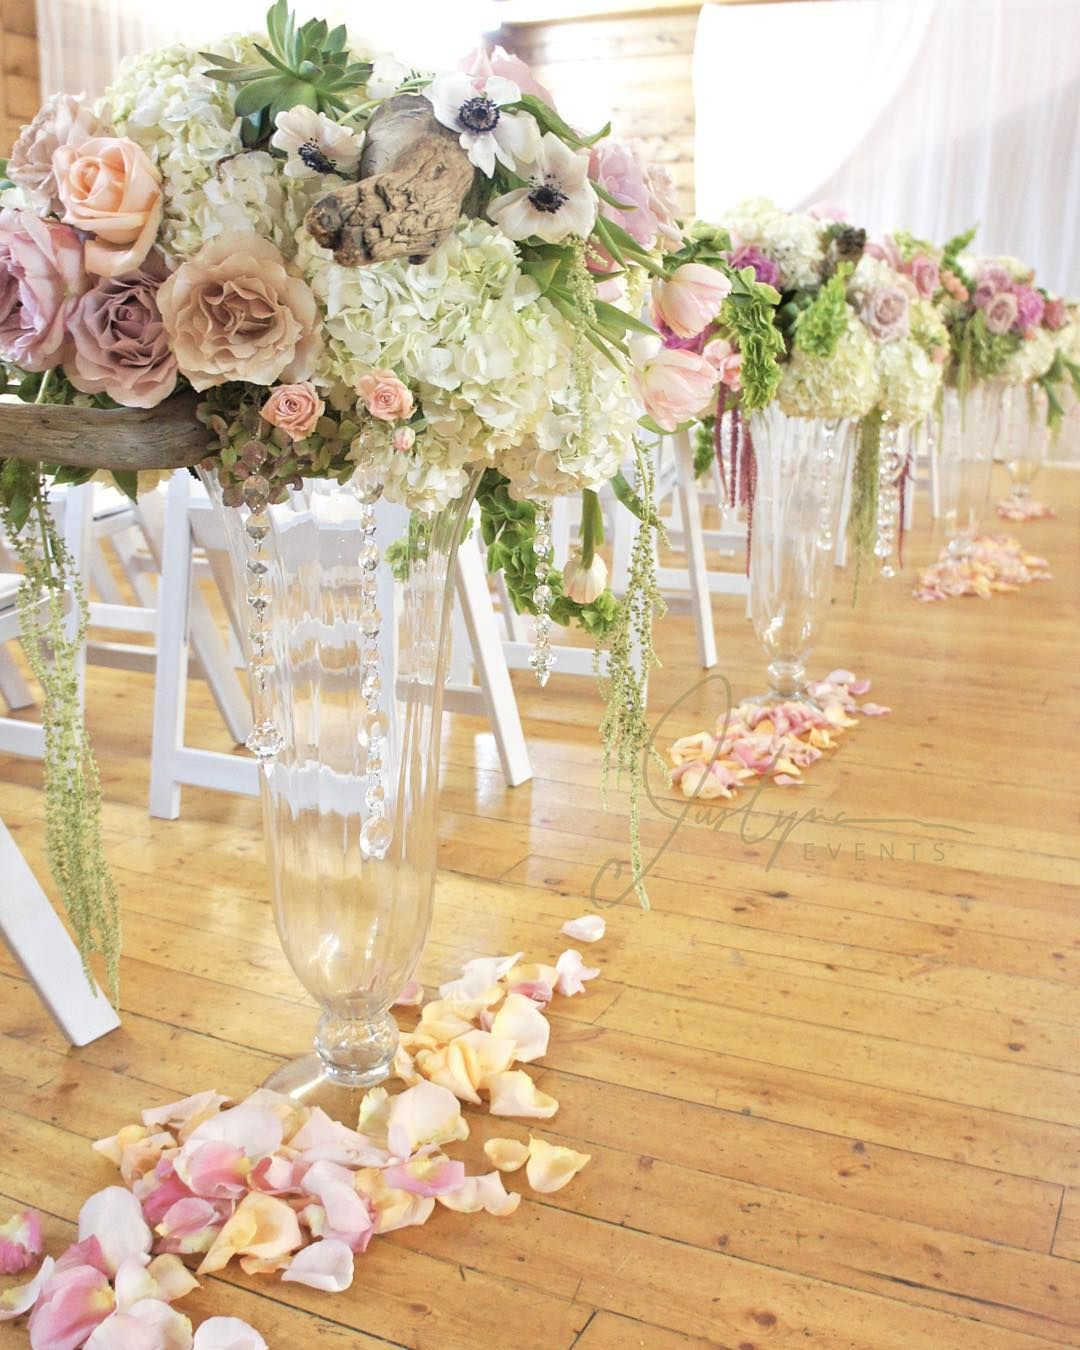 cool vancouver wedding Why not driftwood in your floral arrangements. #justynaevents #vancouverflorist #weddings #flowers #florist #enchantingflowers #weddingreception #cascadingflowers #centerpieces #romantic #candlelight #tbt by @justynaevents  #vancouverflorist #vancouverwedding #vancouverwedding